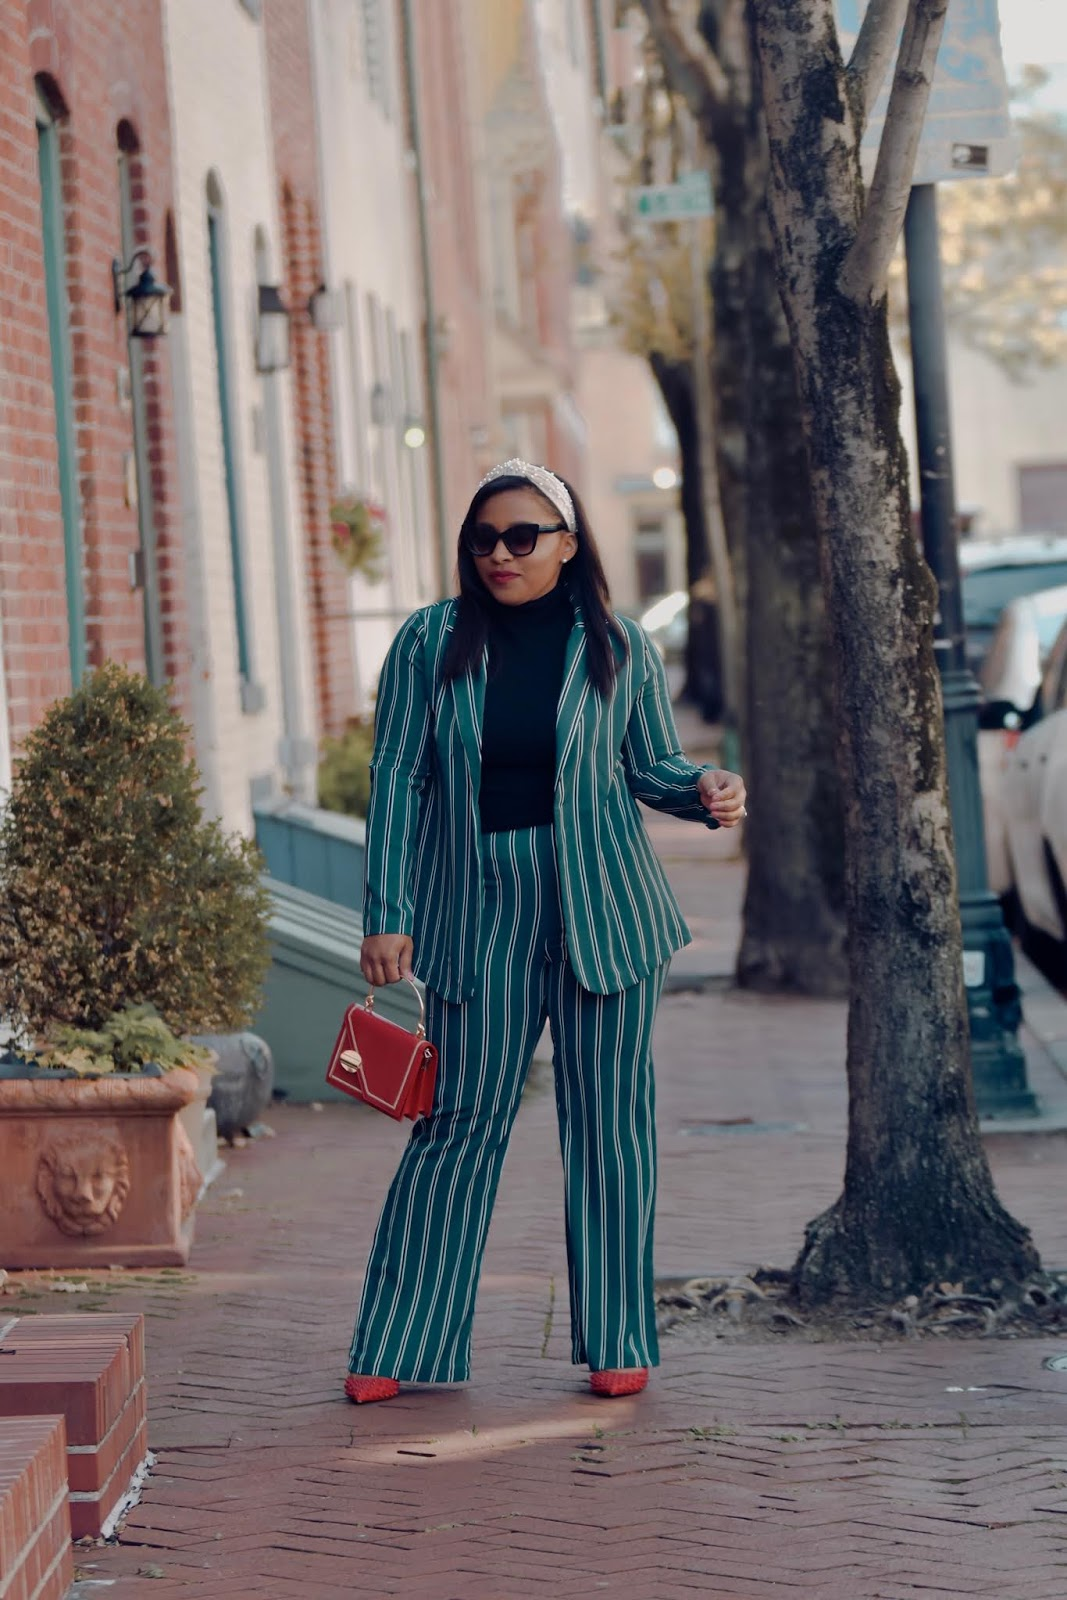 women suit, women blazer, shein, shein reviews, stripped suit, chic outfit ideas, holiday outfit ideas, office party outfits